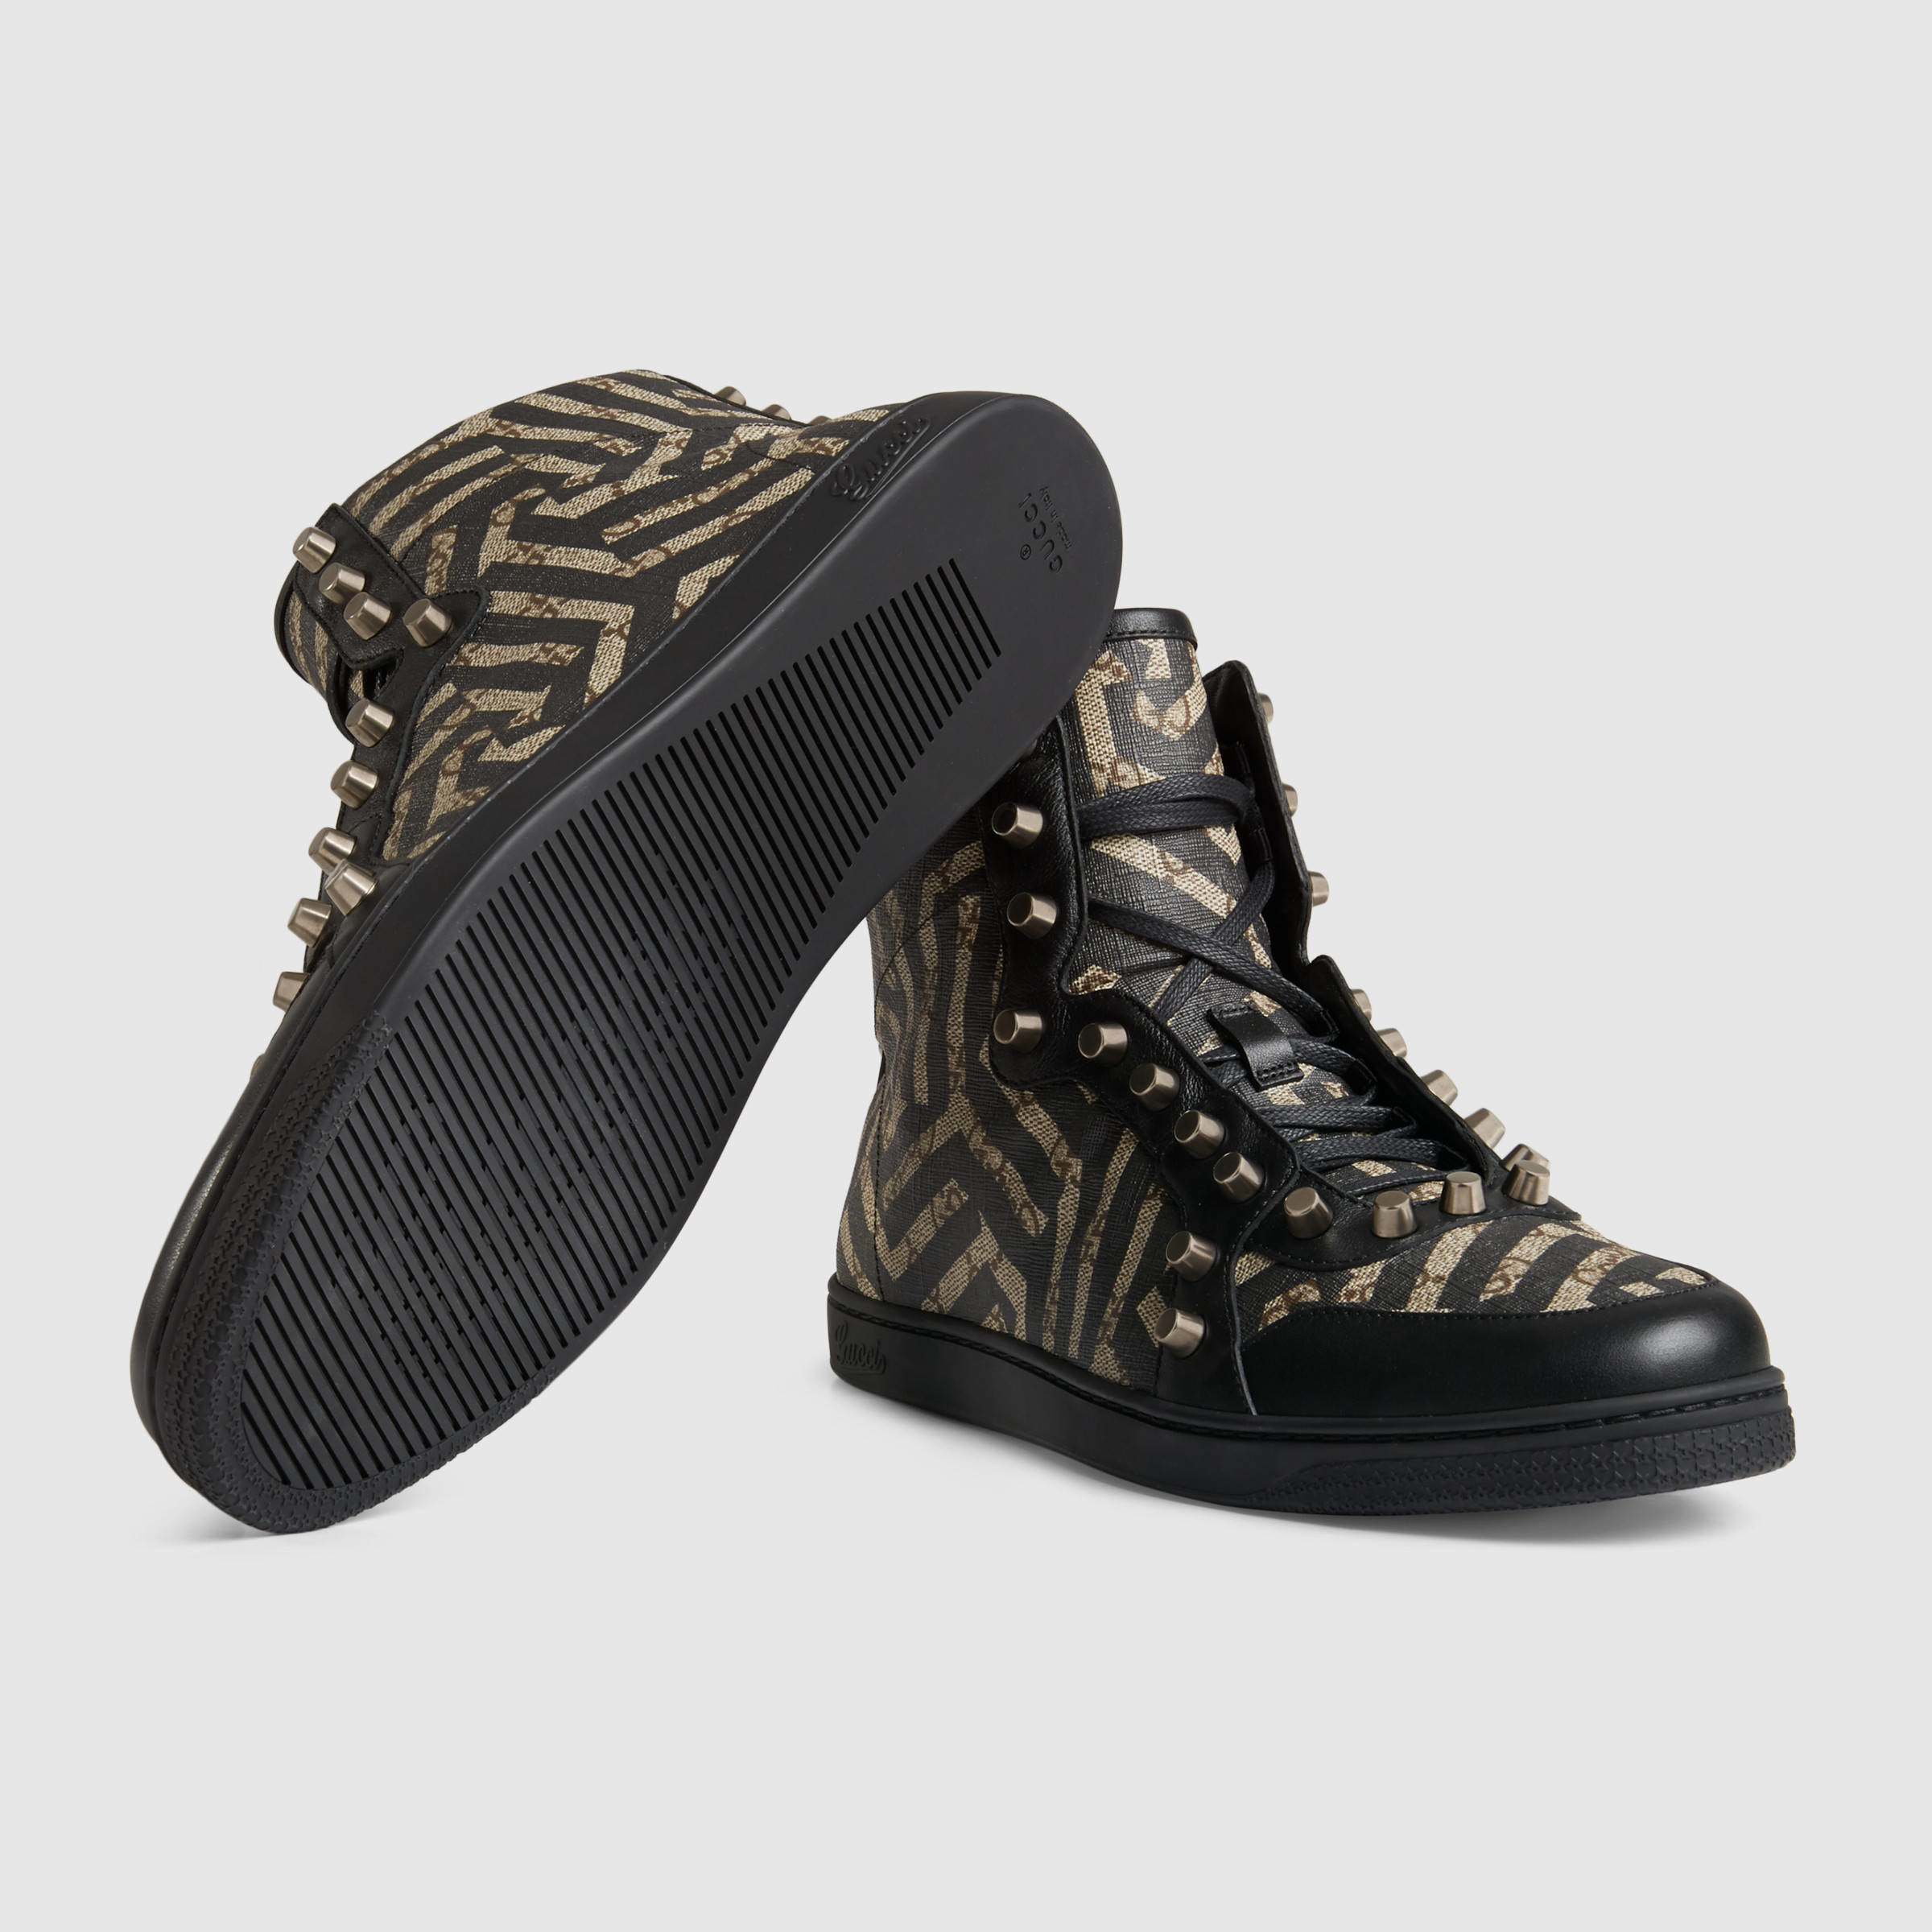 6f55489c1 Gucci Gg Caleido High-top With Studs in Black for Men - Lyst